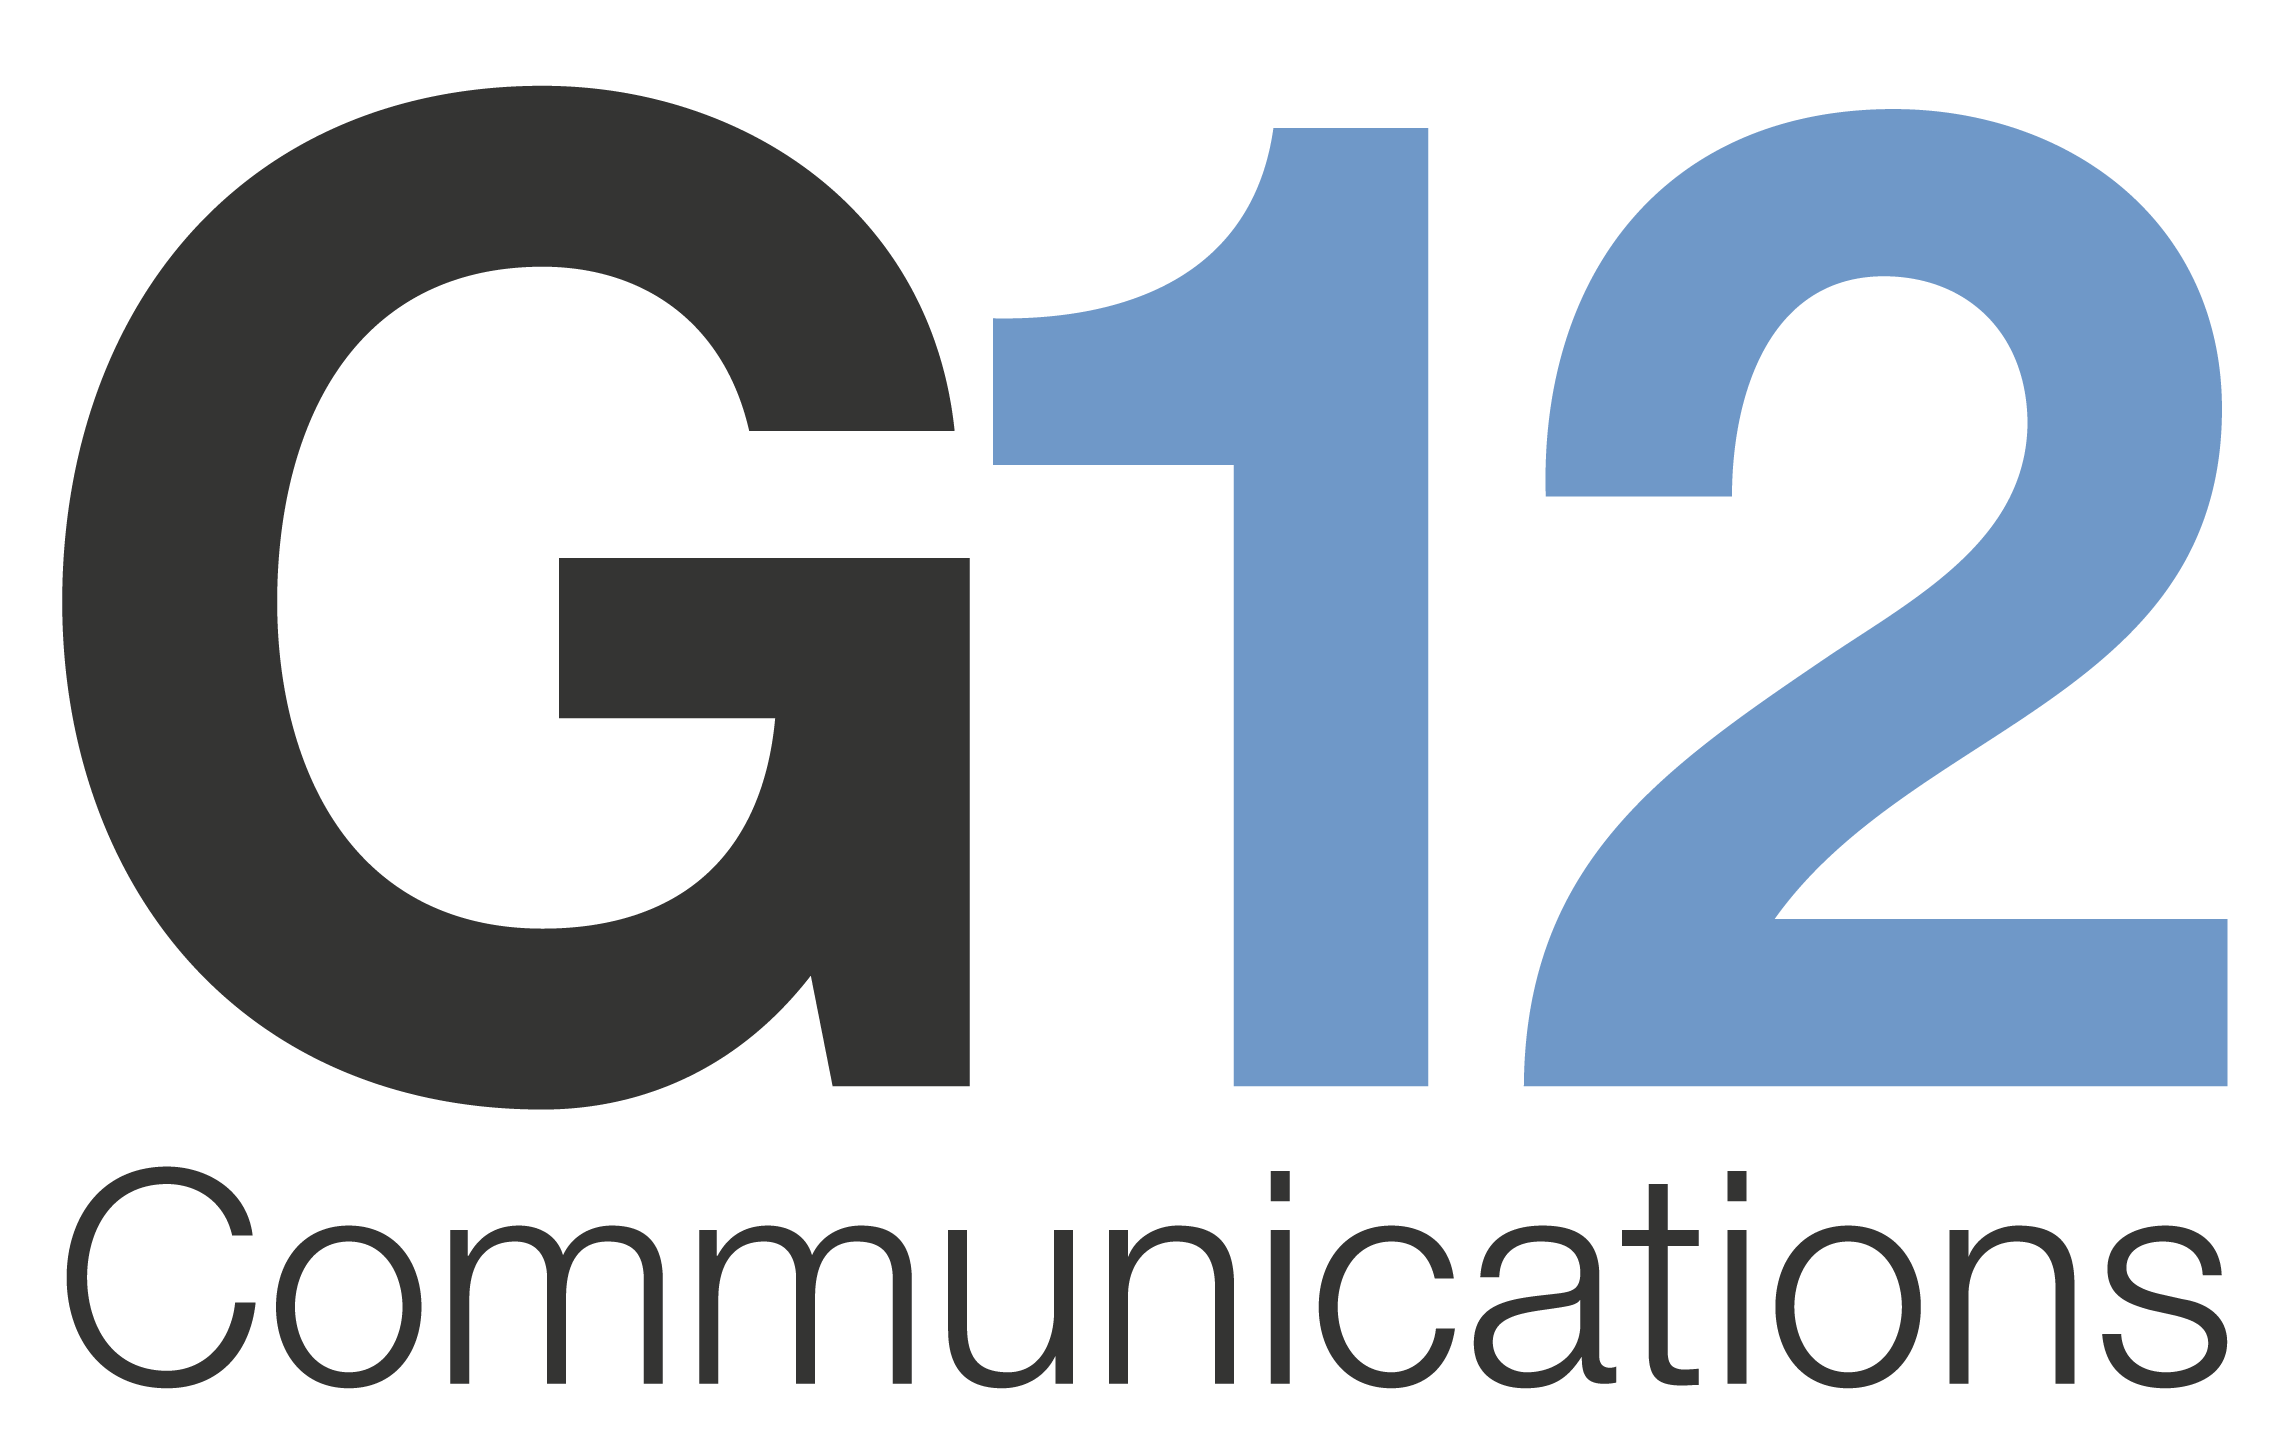 G12 Communications Help Center home page